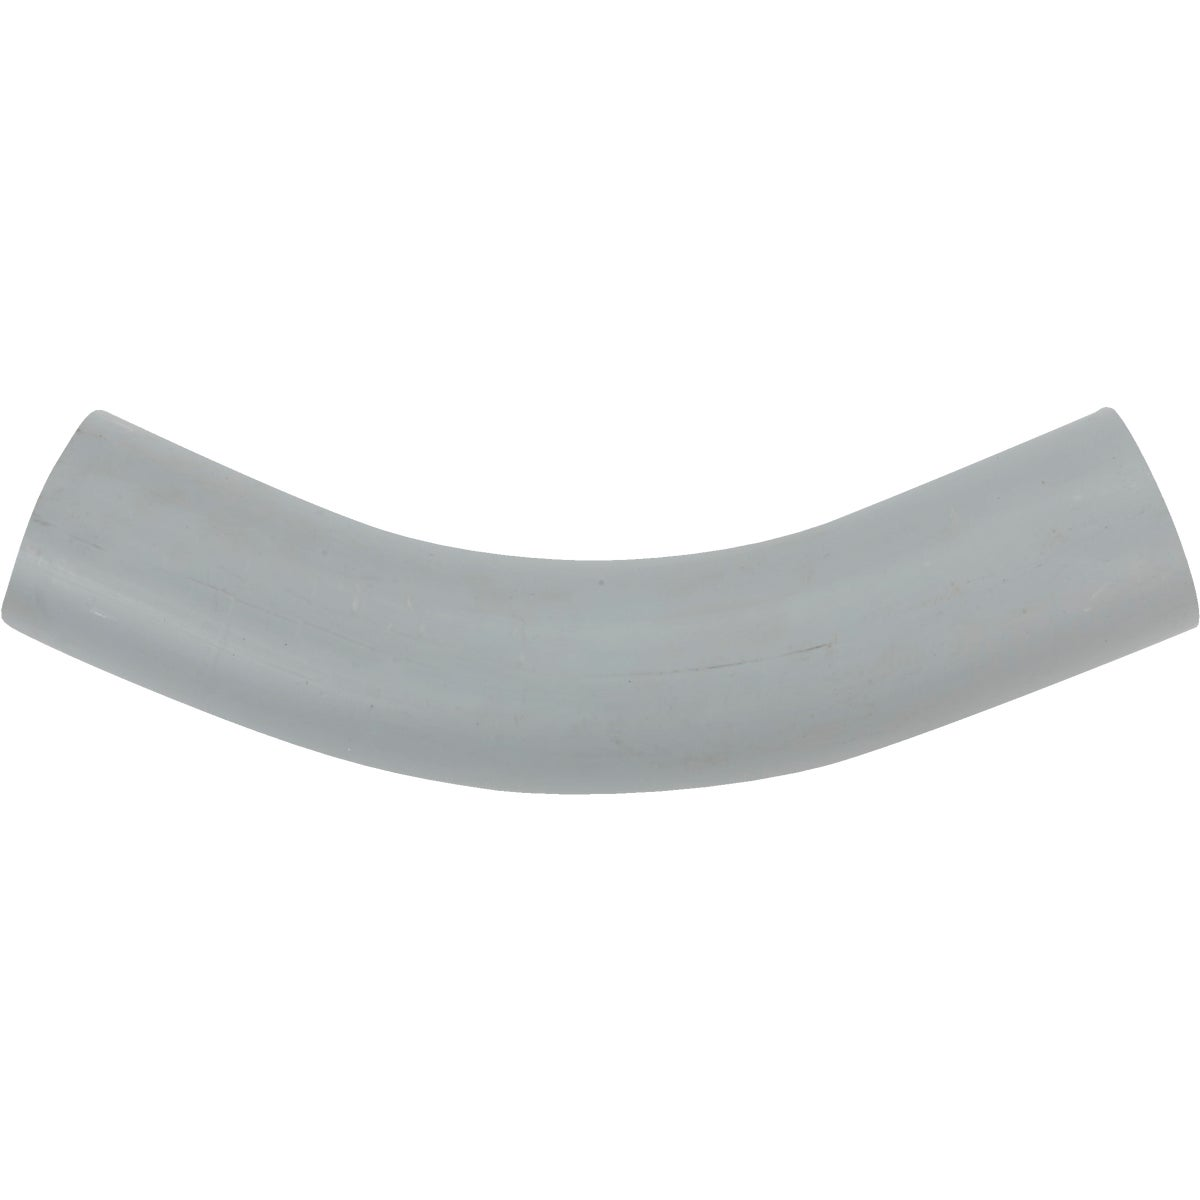 "3"" PVC ELBOW - UA7AL-CAR by Thomas & Betts"